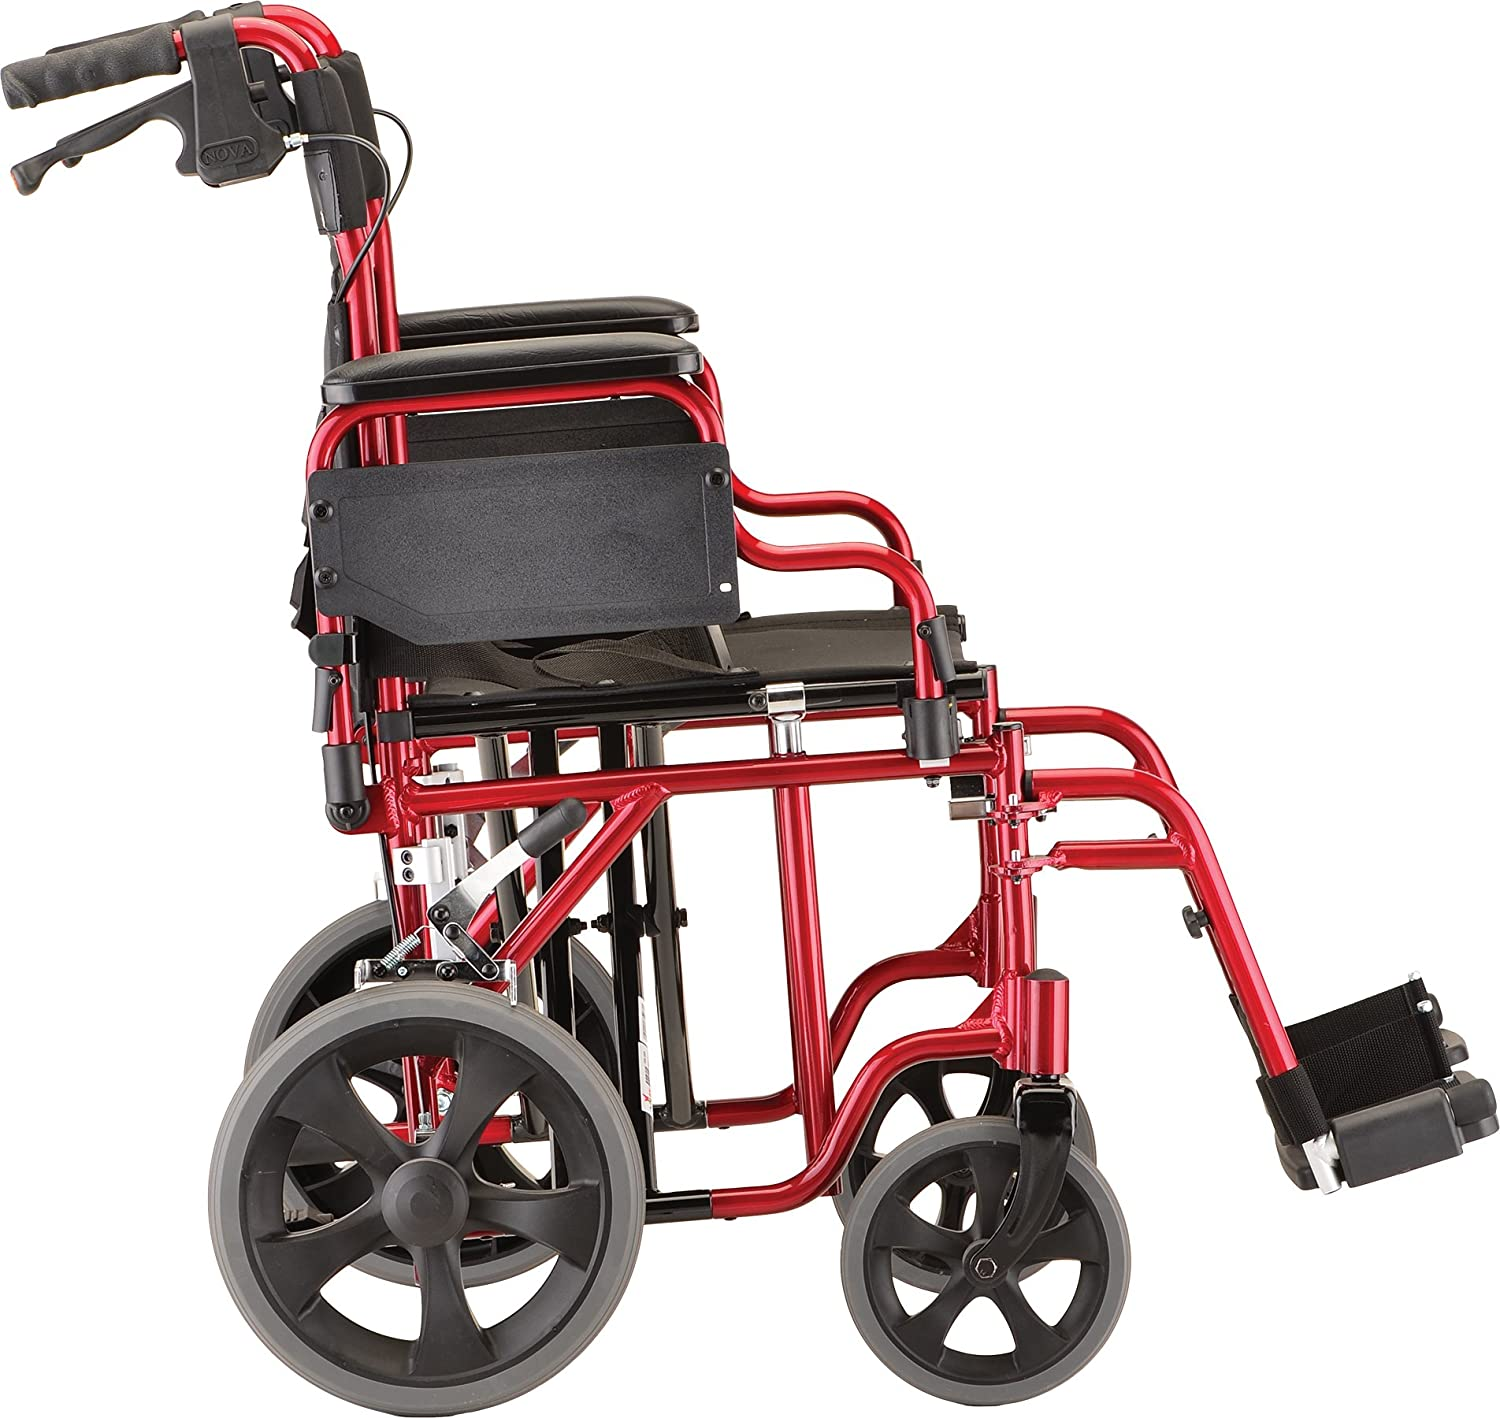 Transport chair amazon - Amazon Com Nova Medical Products 22 Heavy Duty Transport Wheelchair Red Health Personal Care